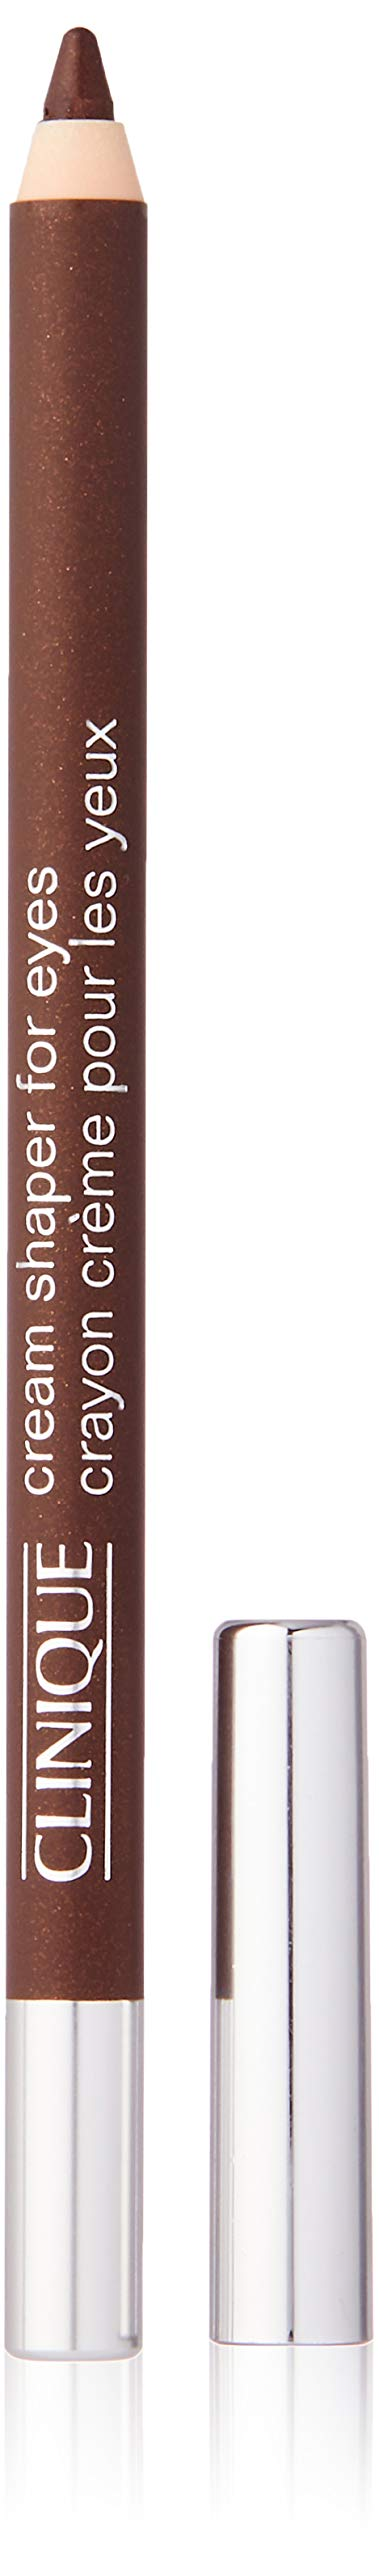 Clinique Cream Shaper for Eyes 105 Chocolate Lustre, 0.04 Ounce